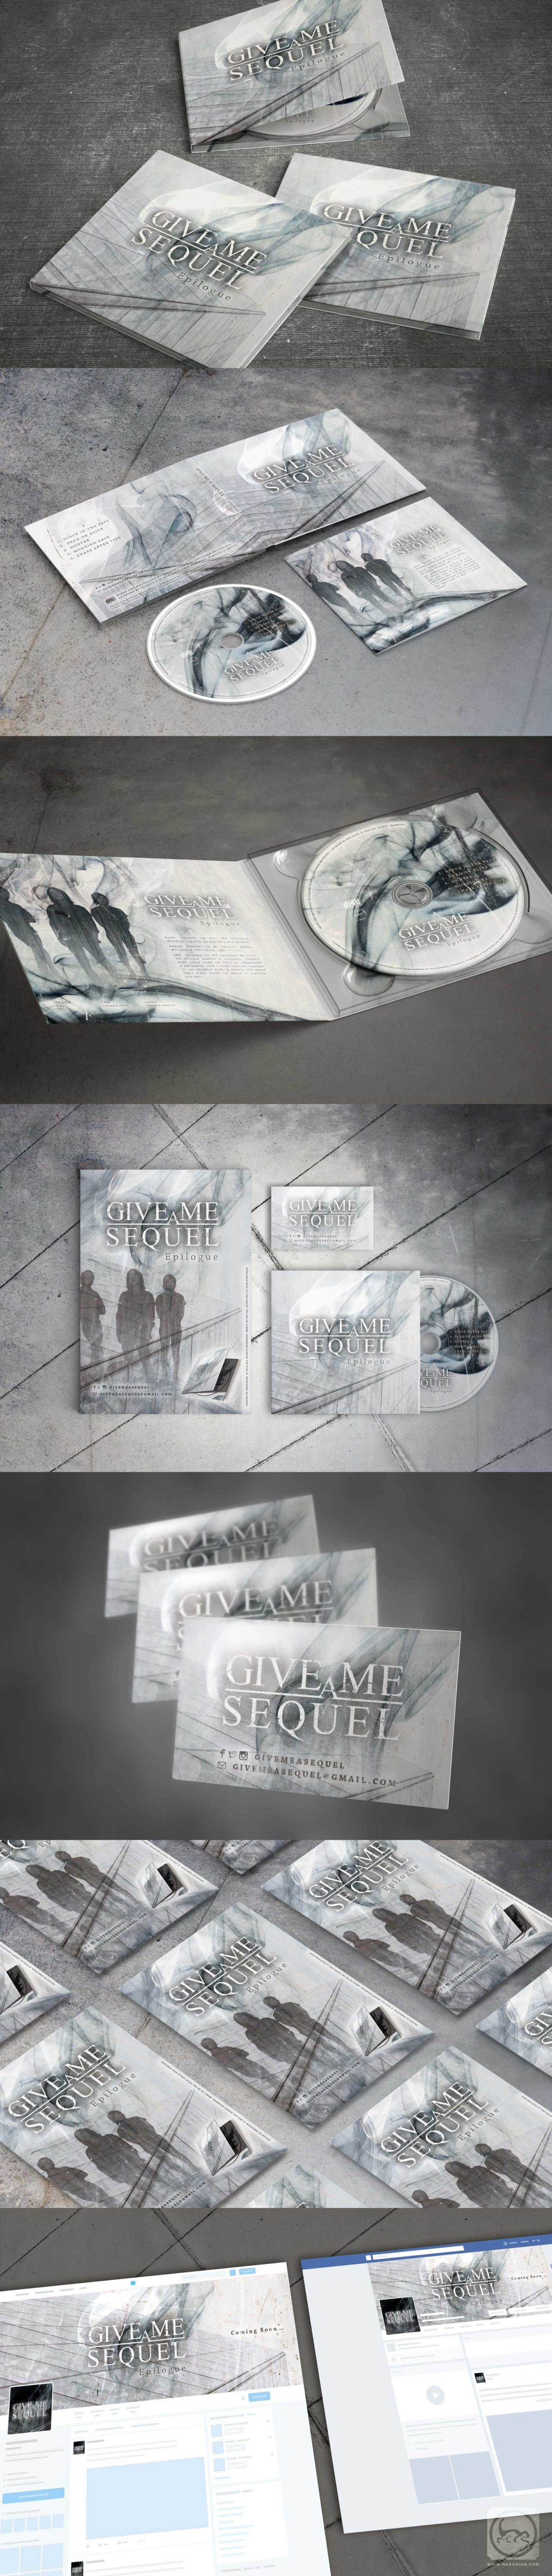 Artwork de l'album Epilogue de Give me a sequel